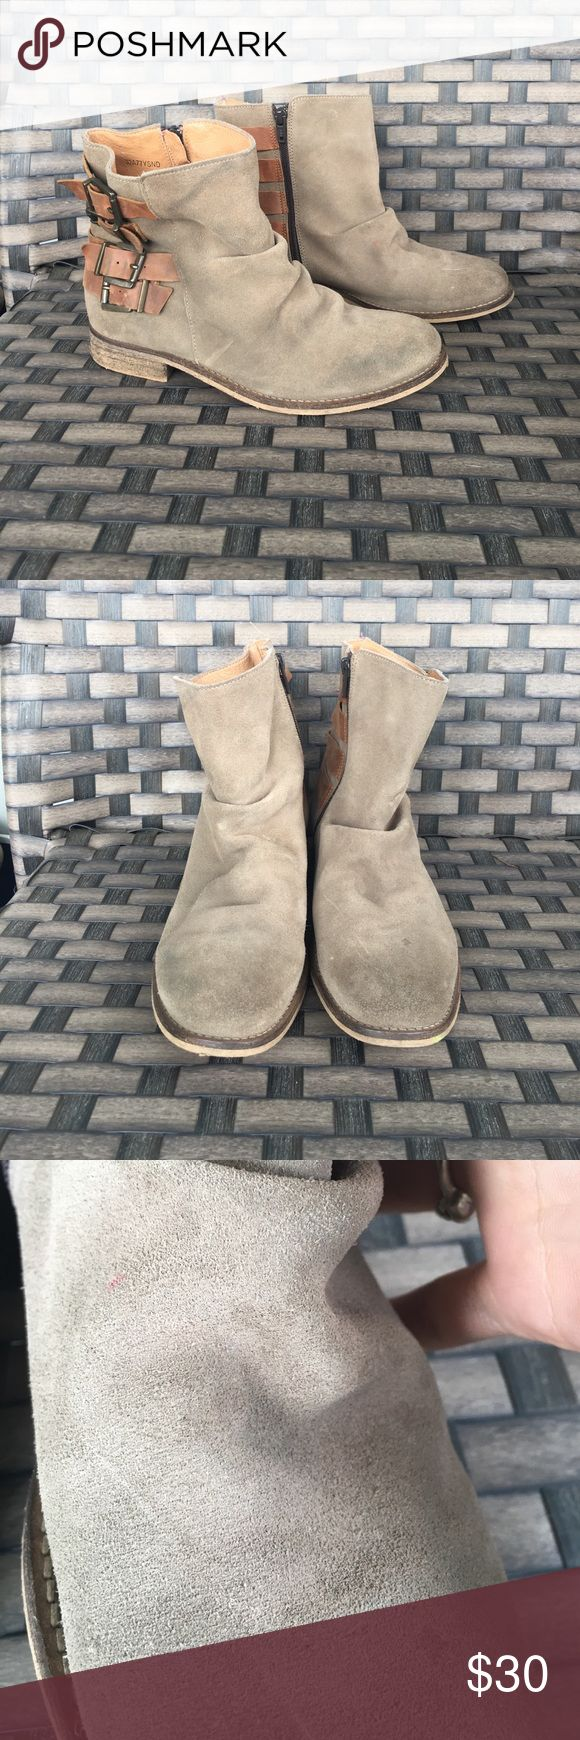 Topshop suede taupe buckled ankle boot 38 good preowned condition some marks by the toes see pic. Super cute suede and leather lined Topshop Shoes Ankle Boots & Booties